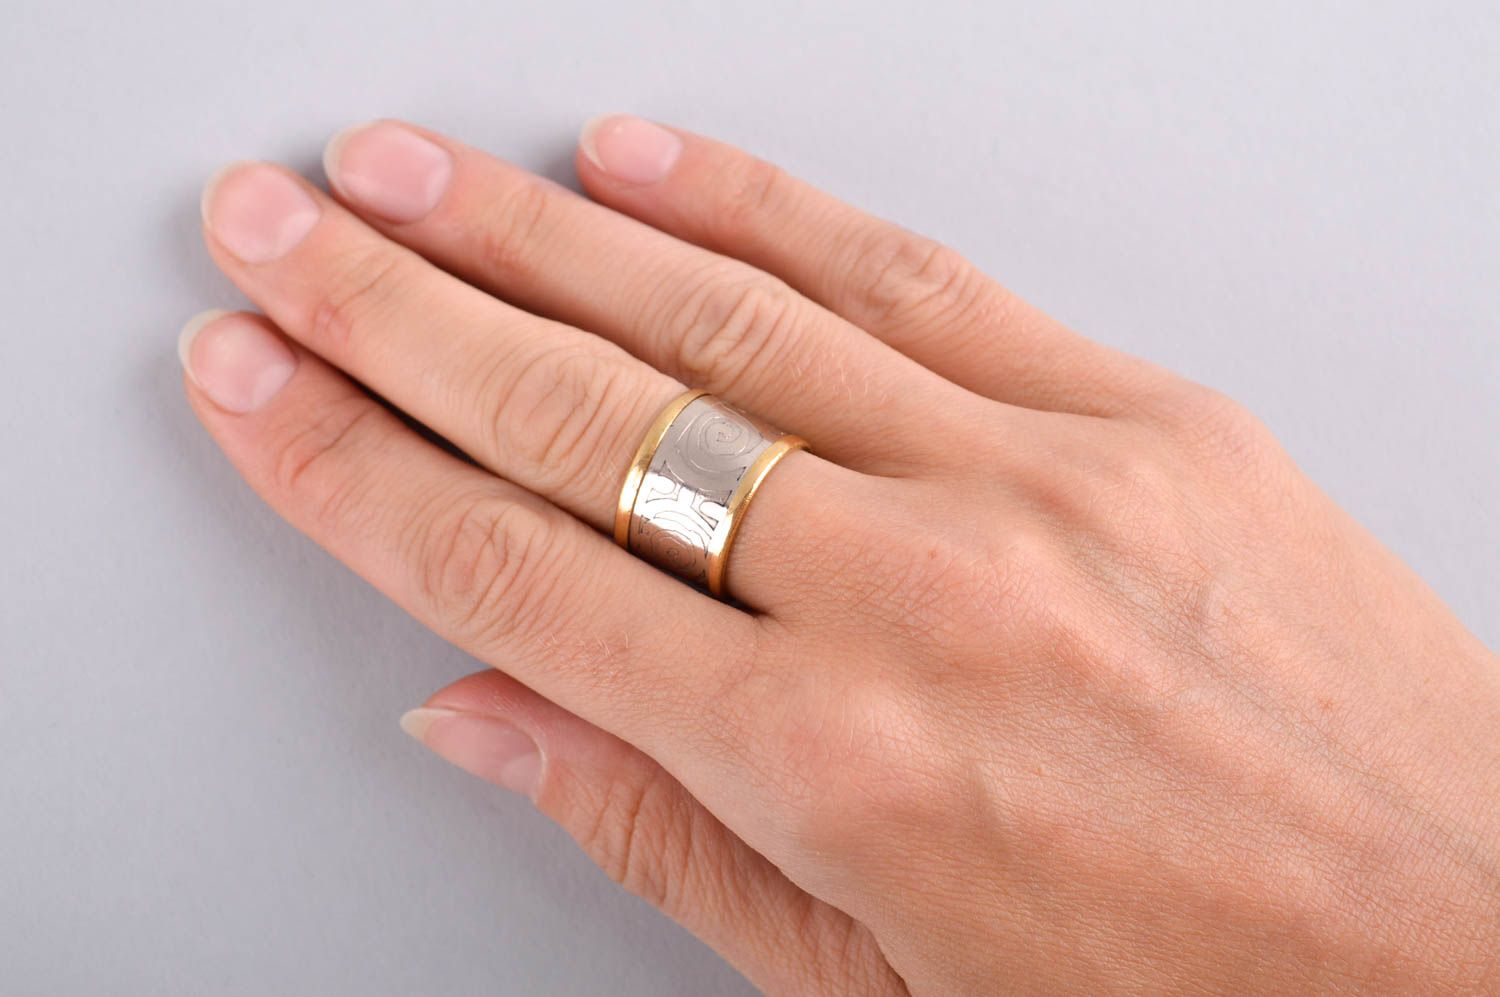 Designer ring unusual gift for women metal accessory brass ring unusual jewelry photo 5